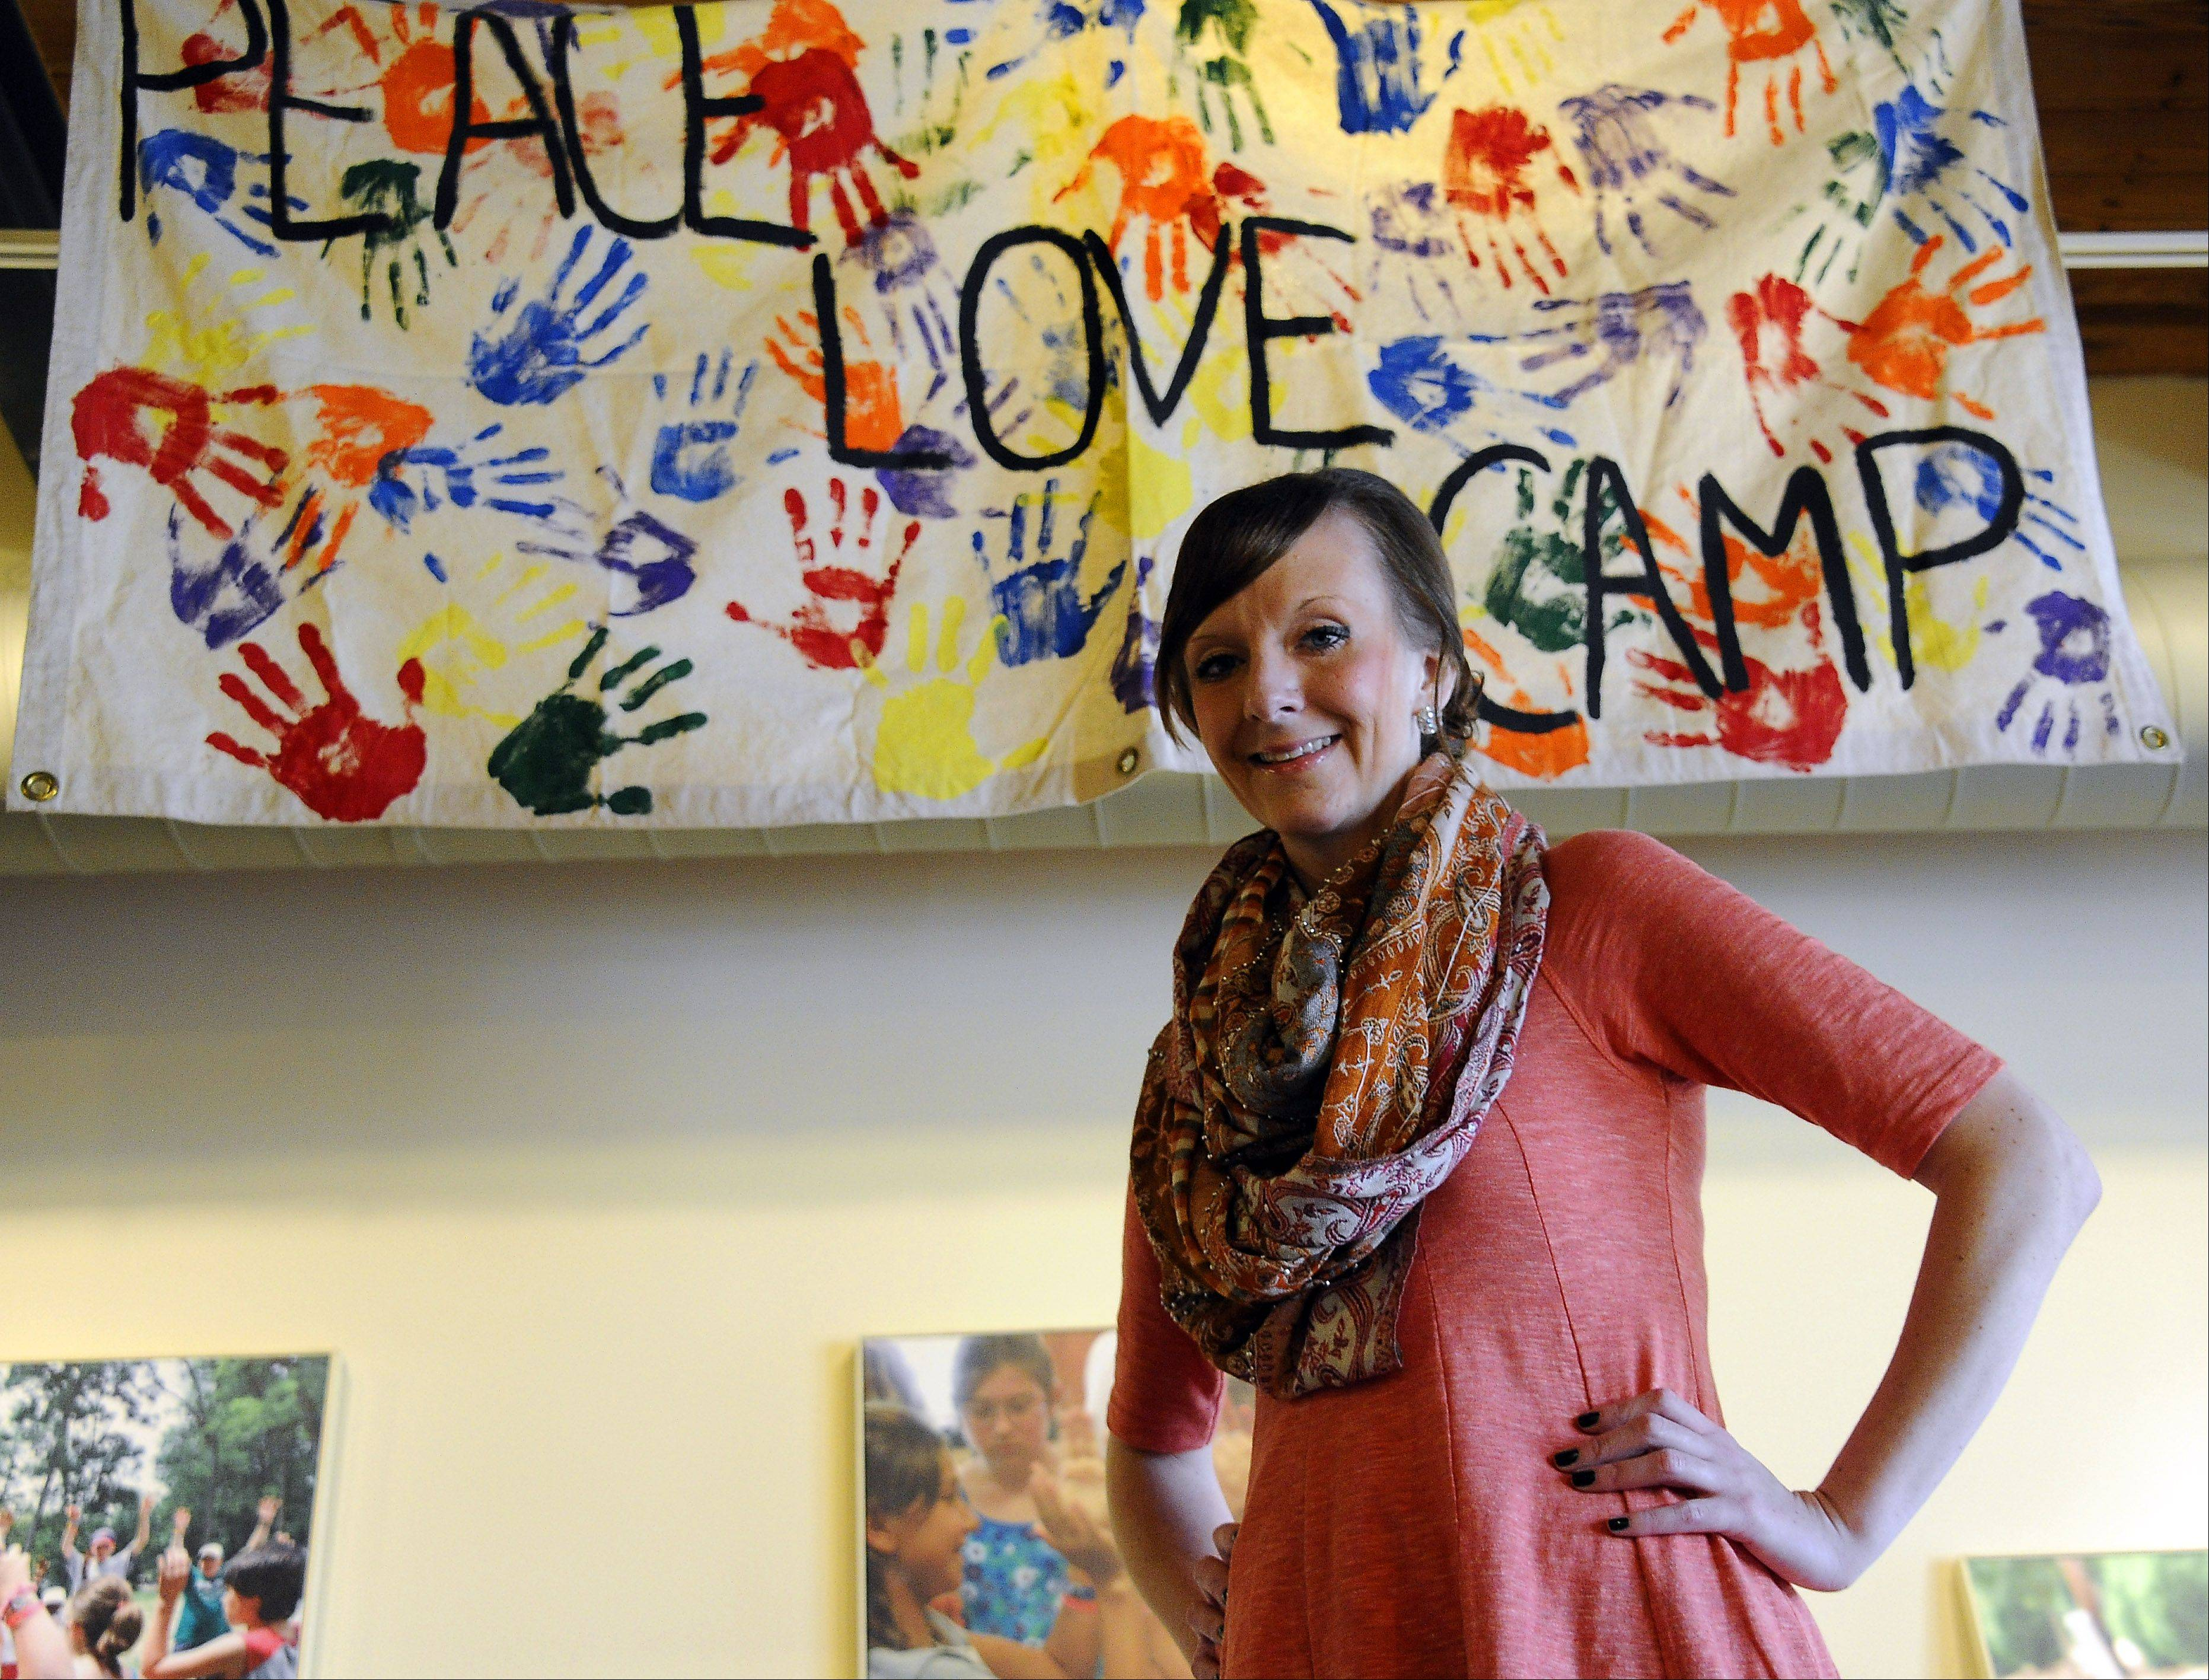 The One Step Camp for kids with cancer revived her spirit and helped save her life when she was diagnosed with pancreatic cancer at age 13, says Colleen McGrath. Now 27 and diagnosed with colon cancer, the Bartlett native says she loves her job with Children's Oncology Services, the charity that runs the camp and other programs for kids with cancer.